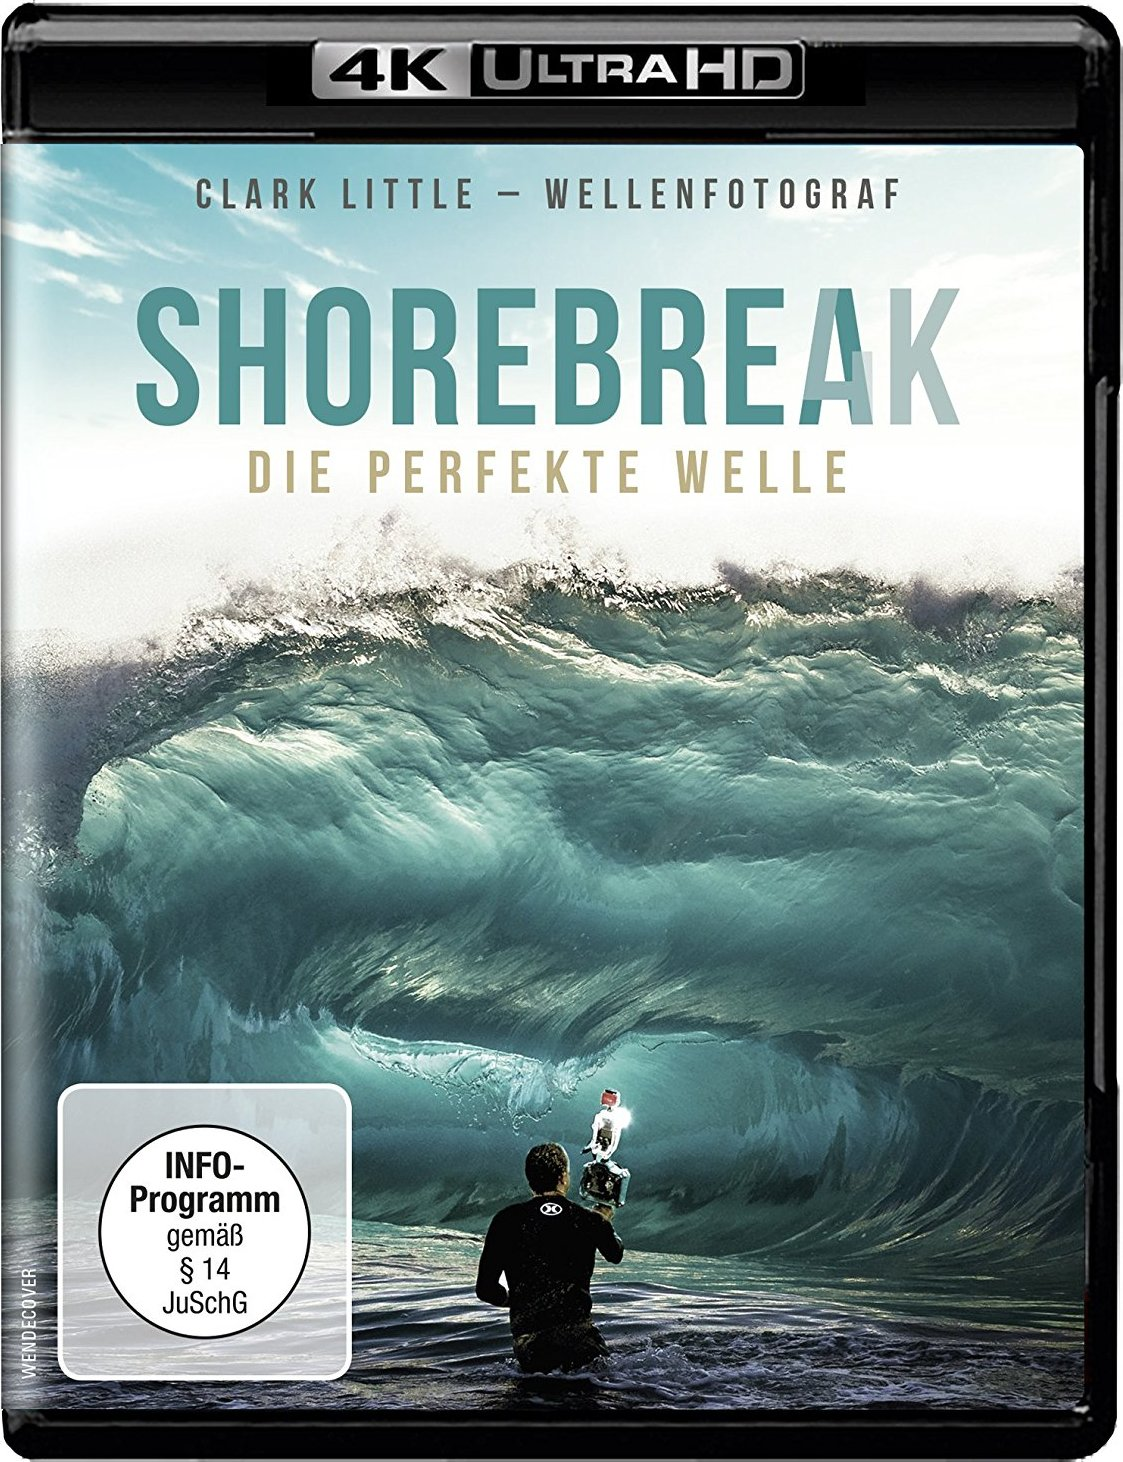 Shorebreak The Clark Little Story 2016 2160p UHD BluRay 6CH DTS-HD x265-GUACAMOLE